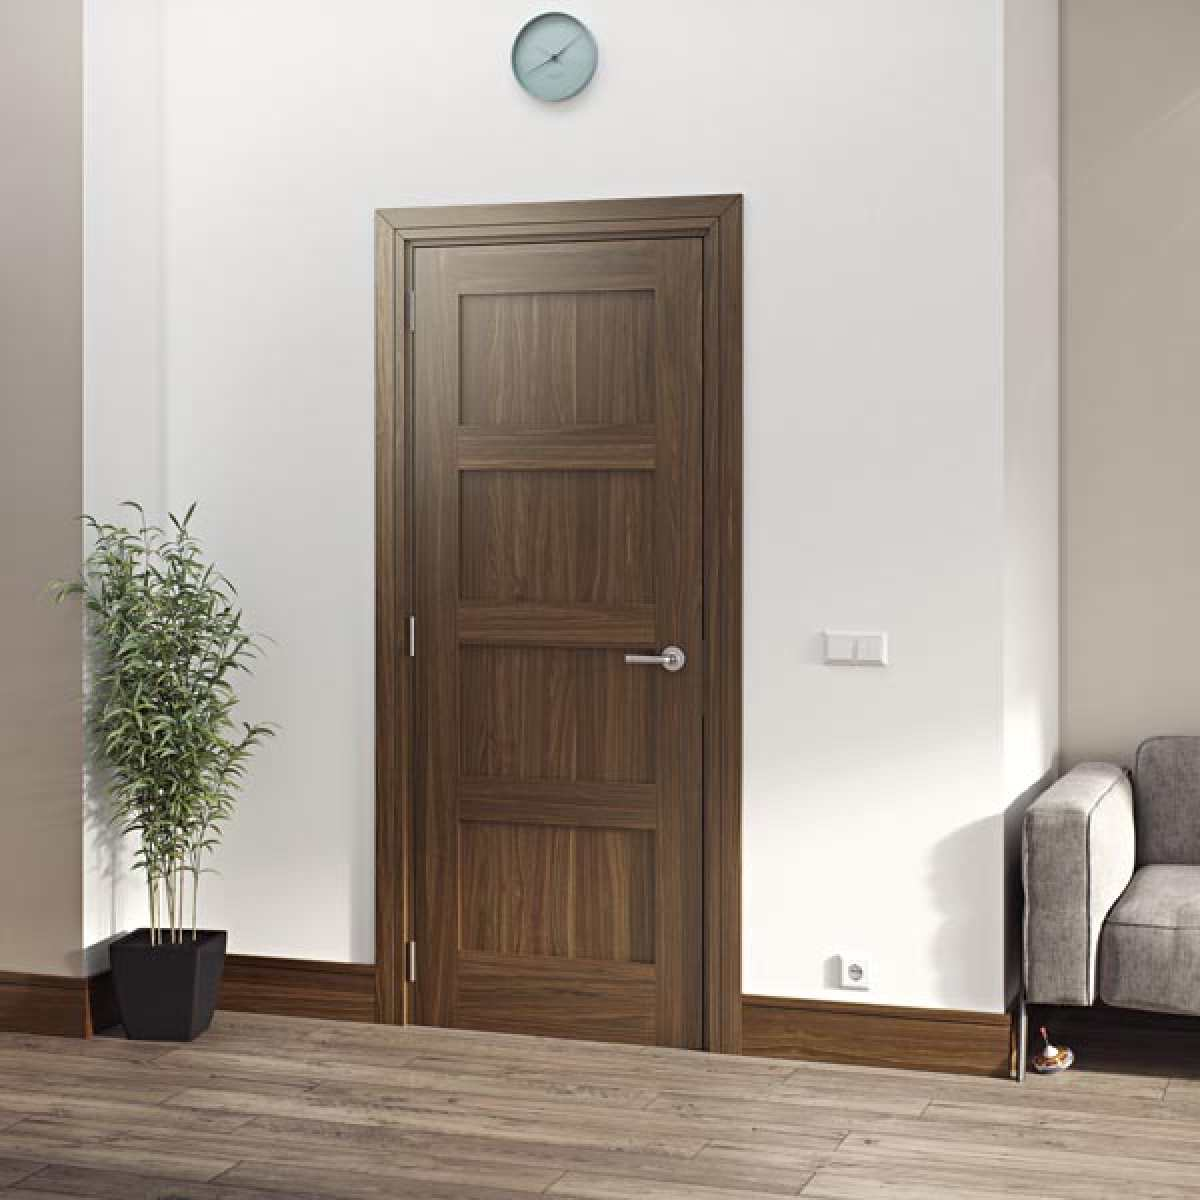 coventry walnut lifestyle websters Image by Websters Timber